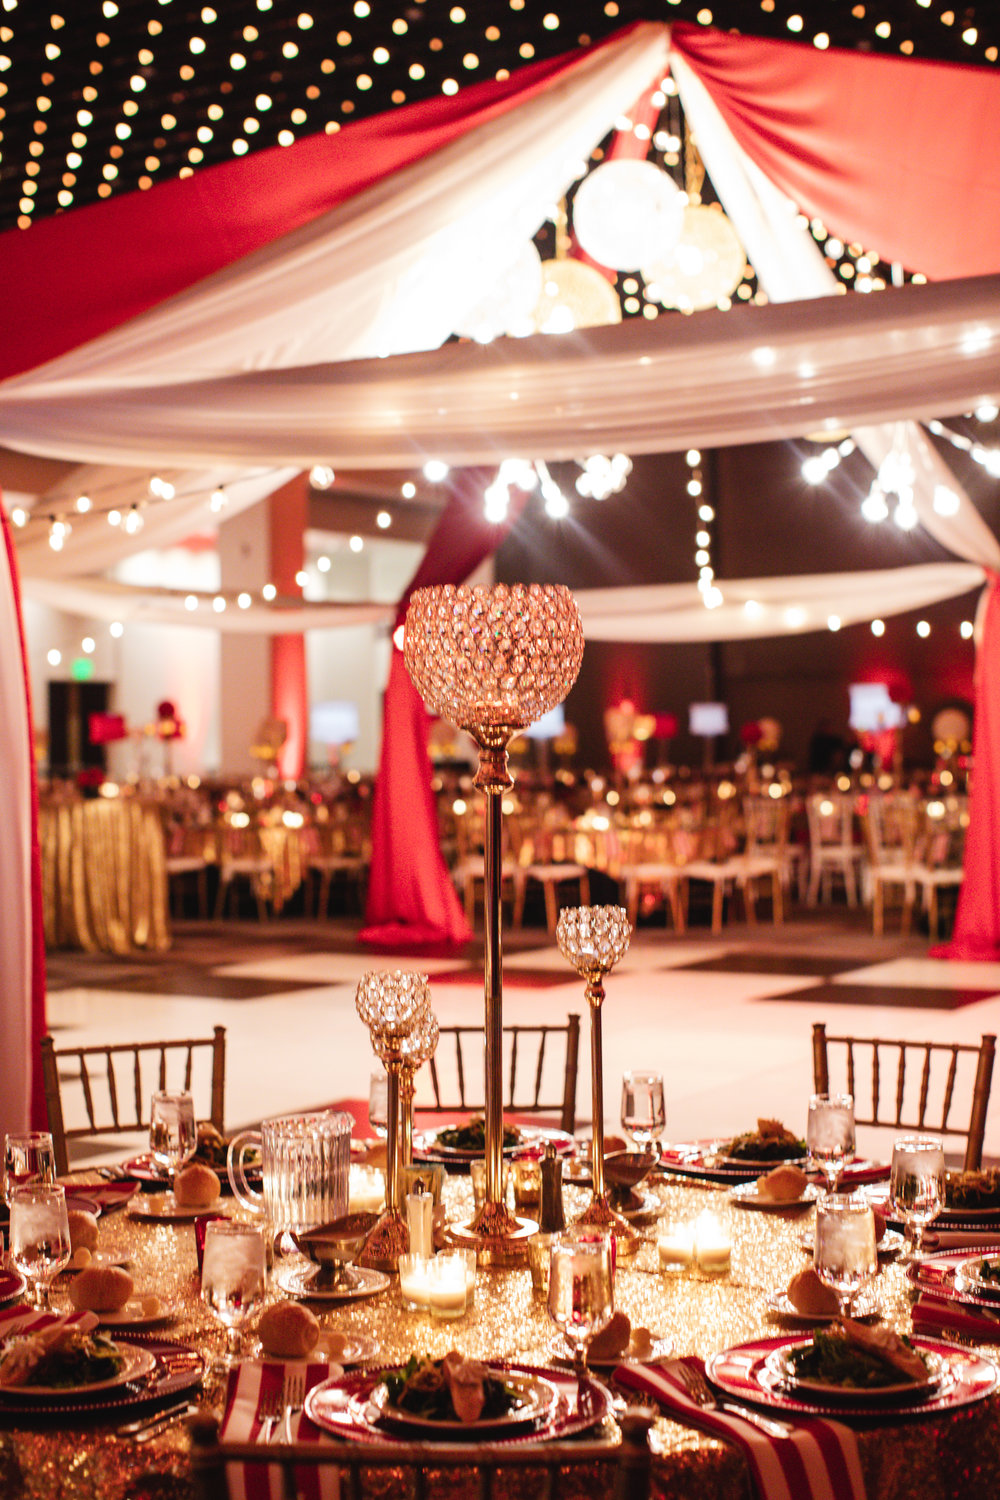 Total Events Dance Floor with Cabana at the Albany Capital Center - Featuring linens from The Collection, centerpieces, charger plates, and gold chiavari chairs.